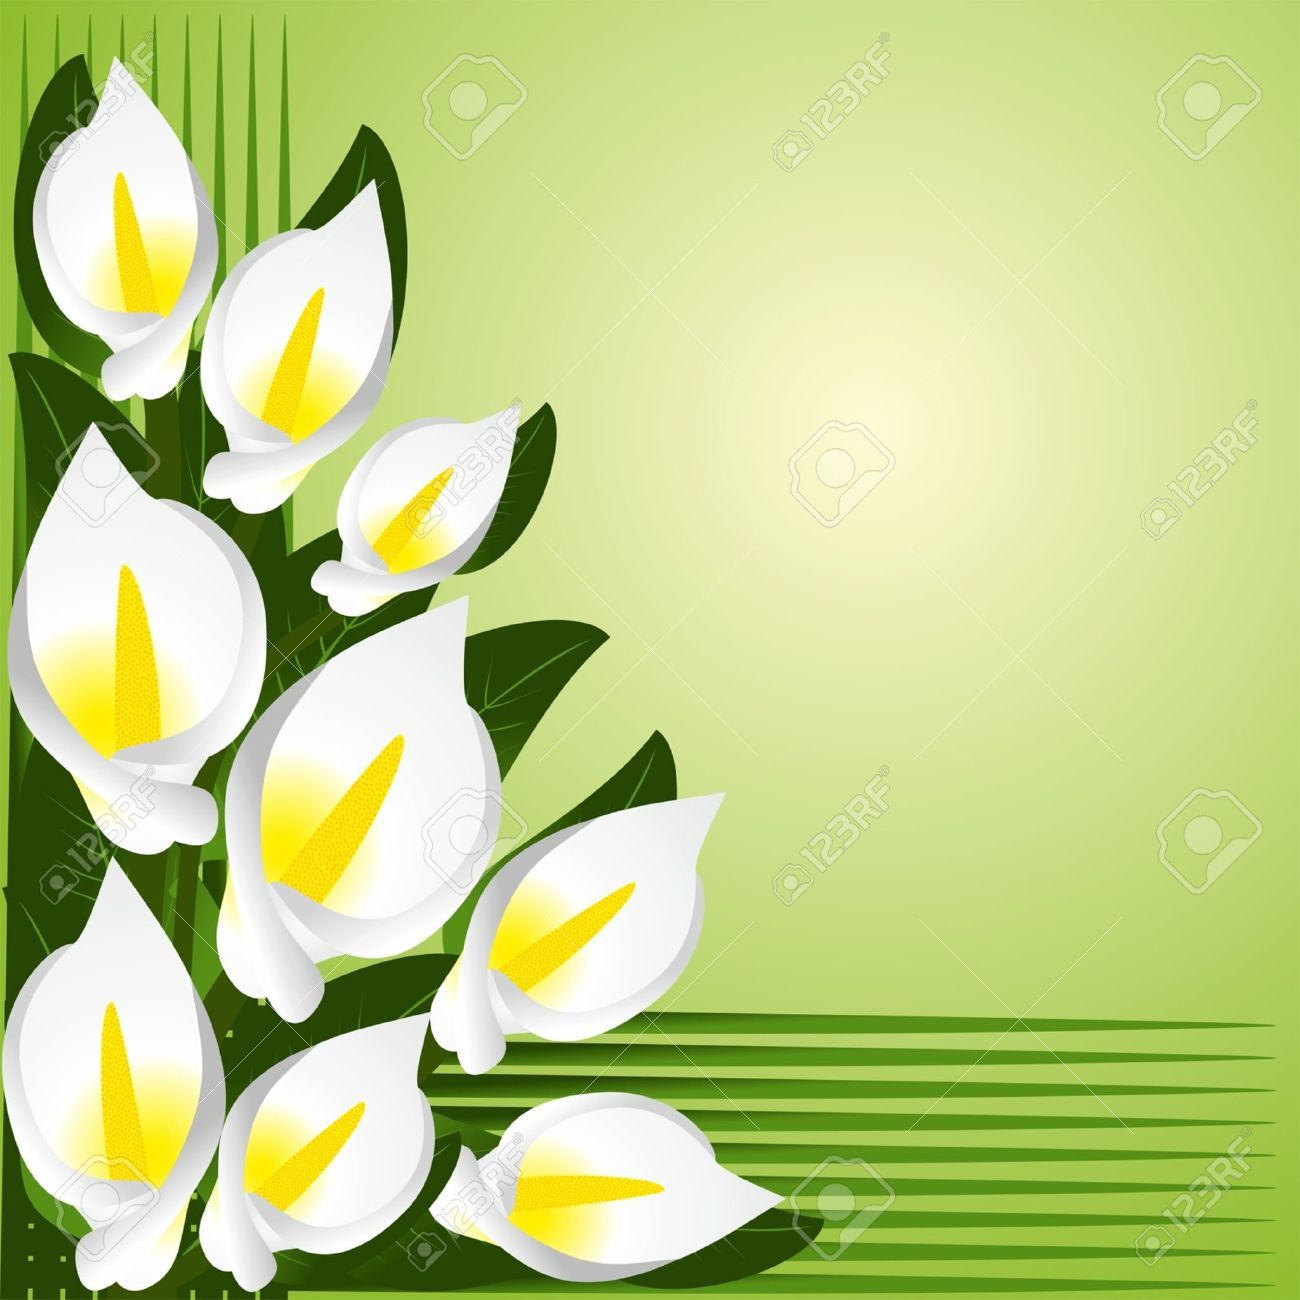 Calla lily border clipart svg royalty free stock Stock Vector | Recipes | Calla lily, Flowers, Lily svg royalty free stock